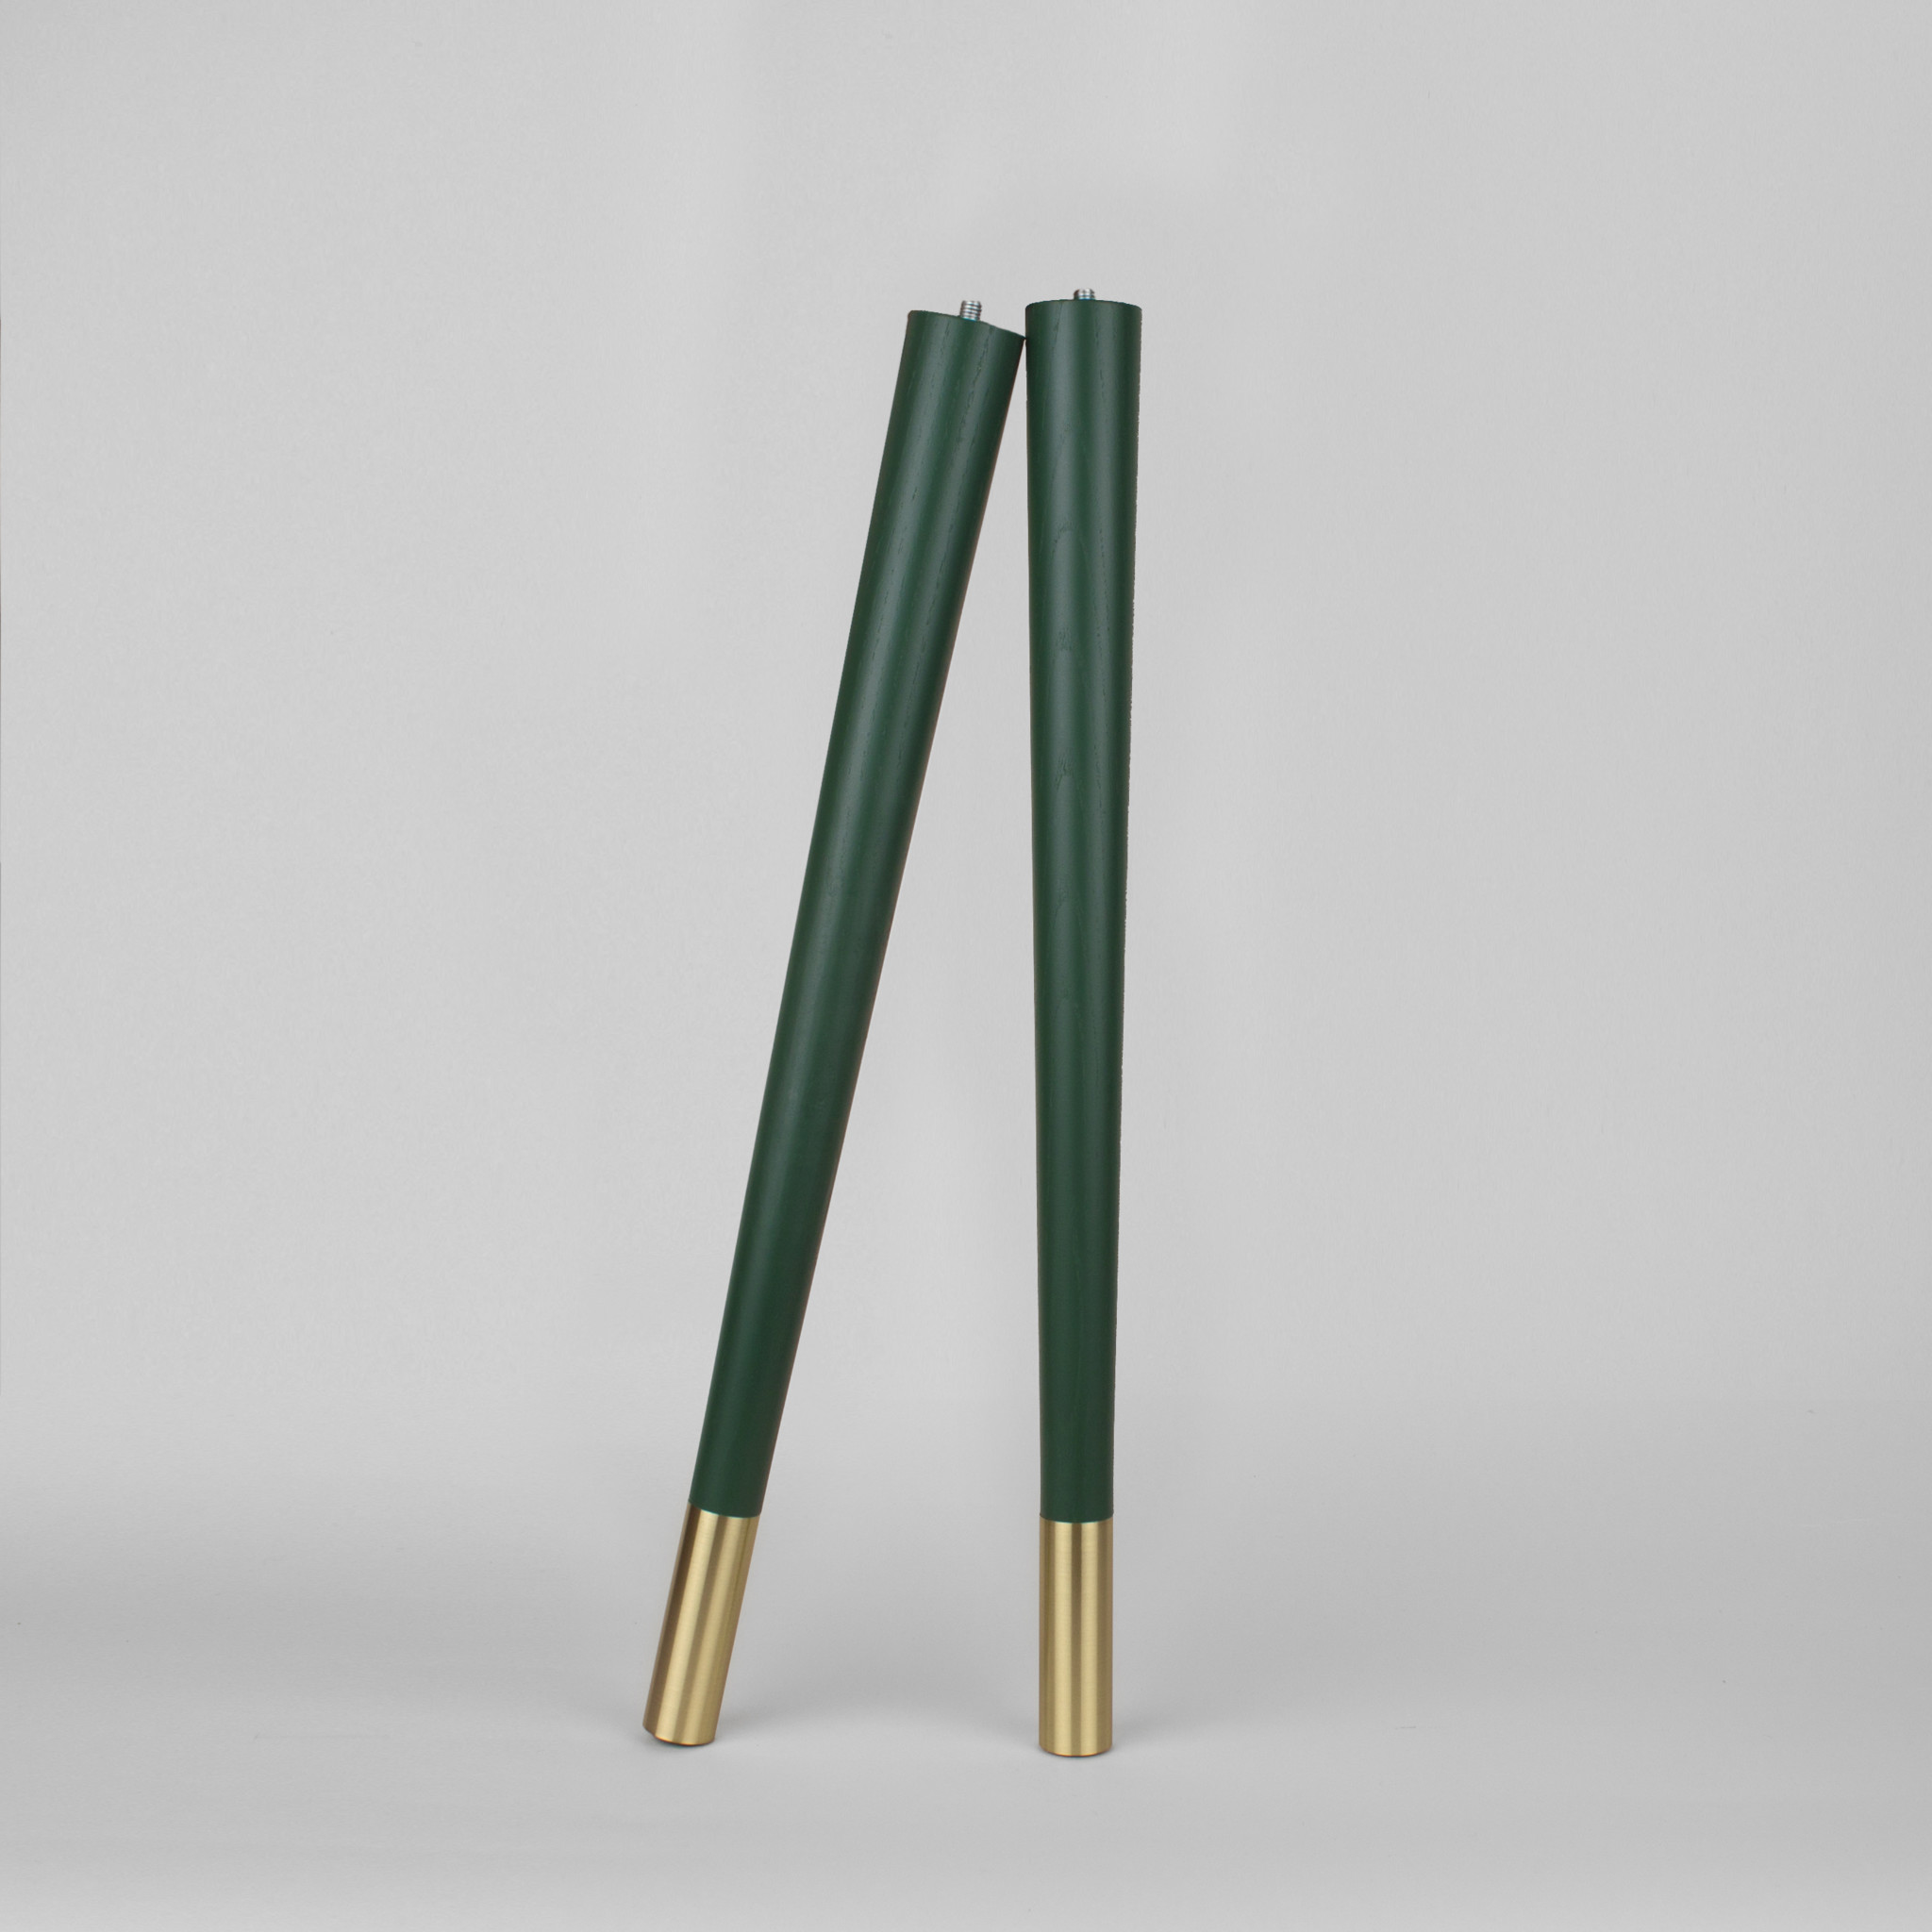 Estelle 480 ben 4-pack forest green Prettypegs